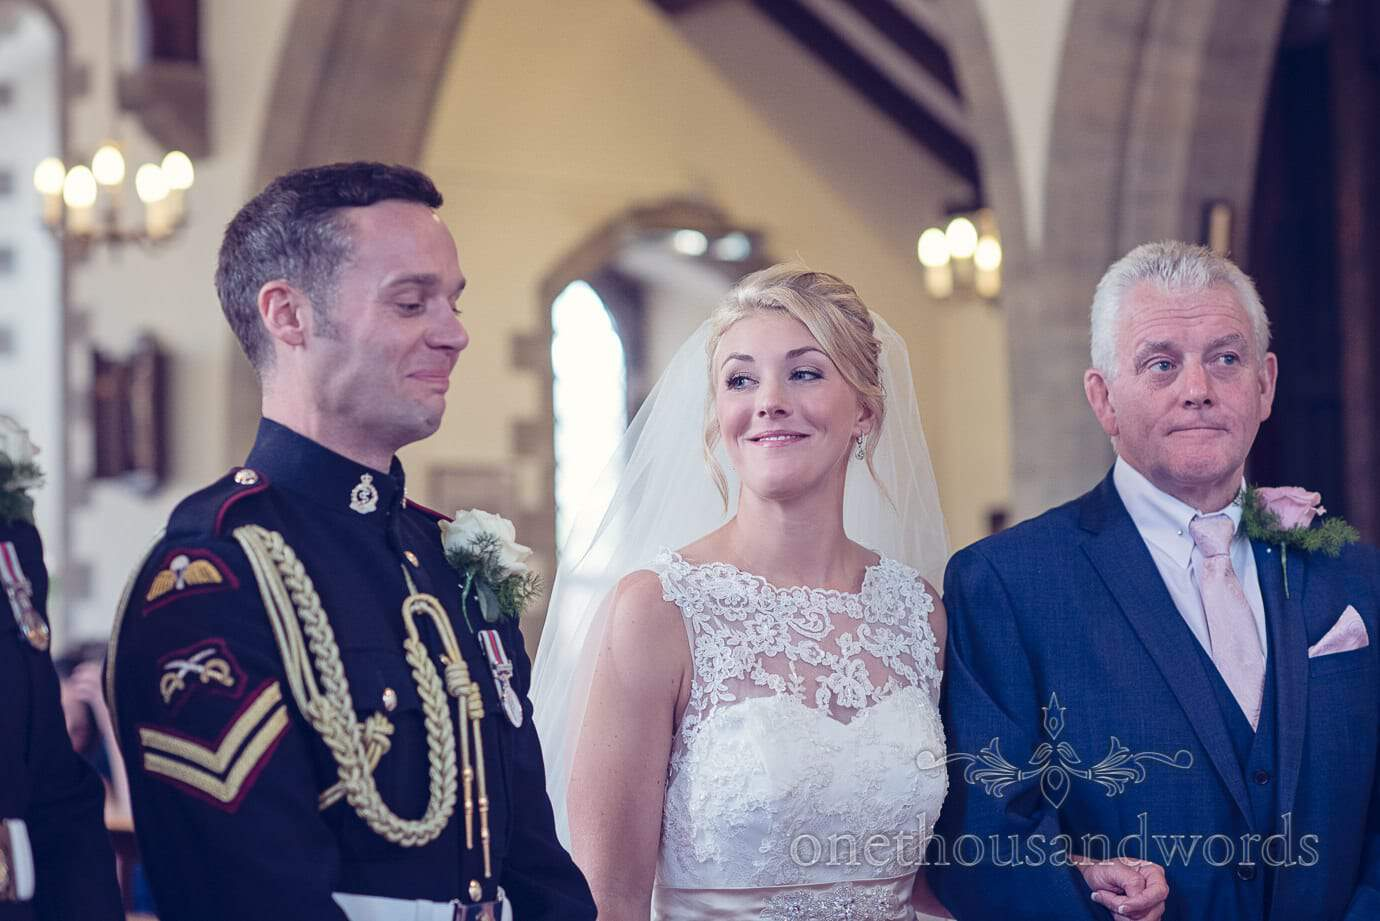 Bride and groom at St Marks Church wedding ceremony in Swange, Dorset